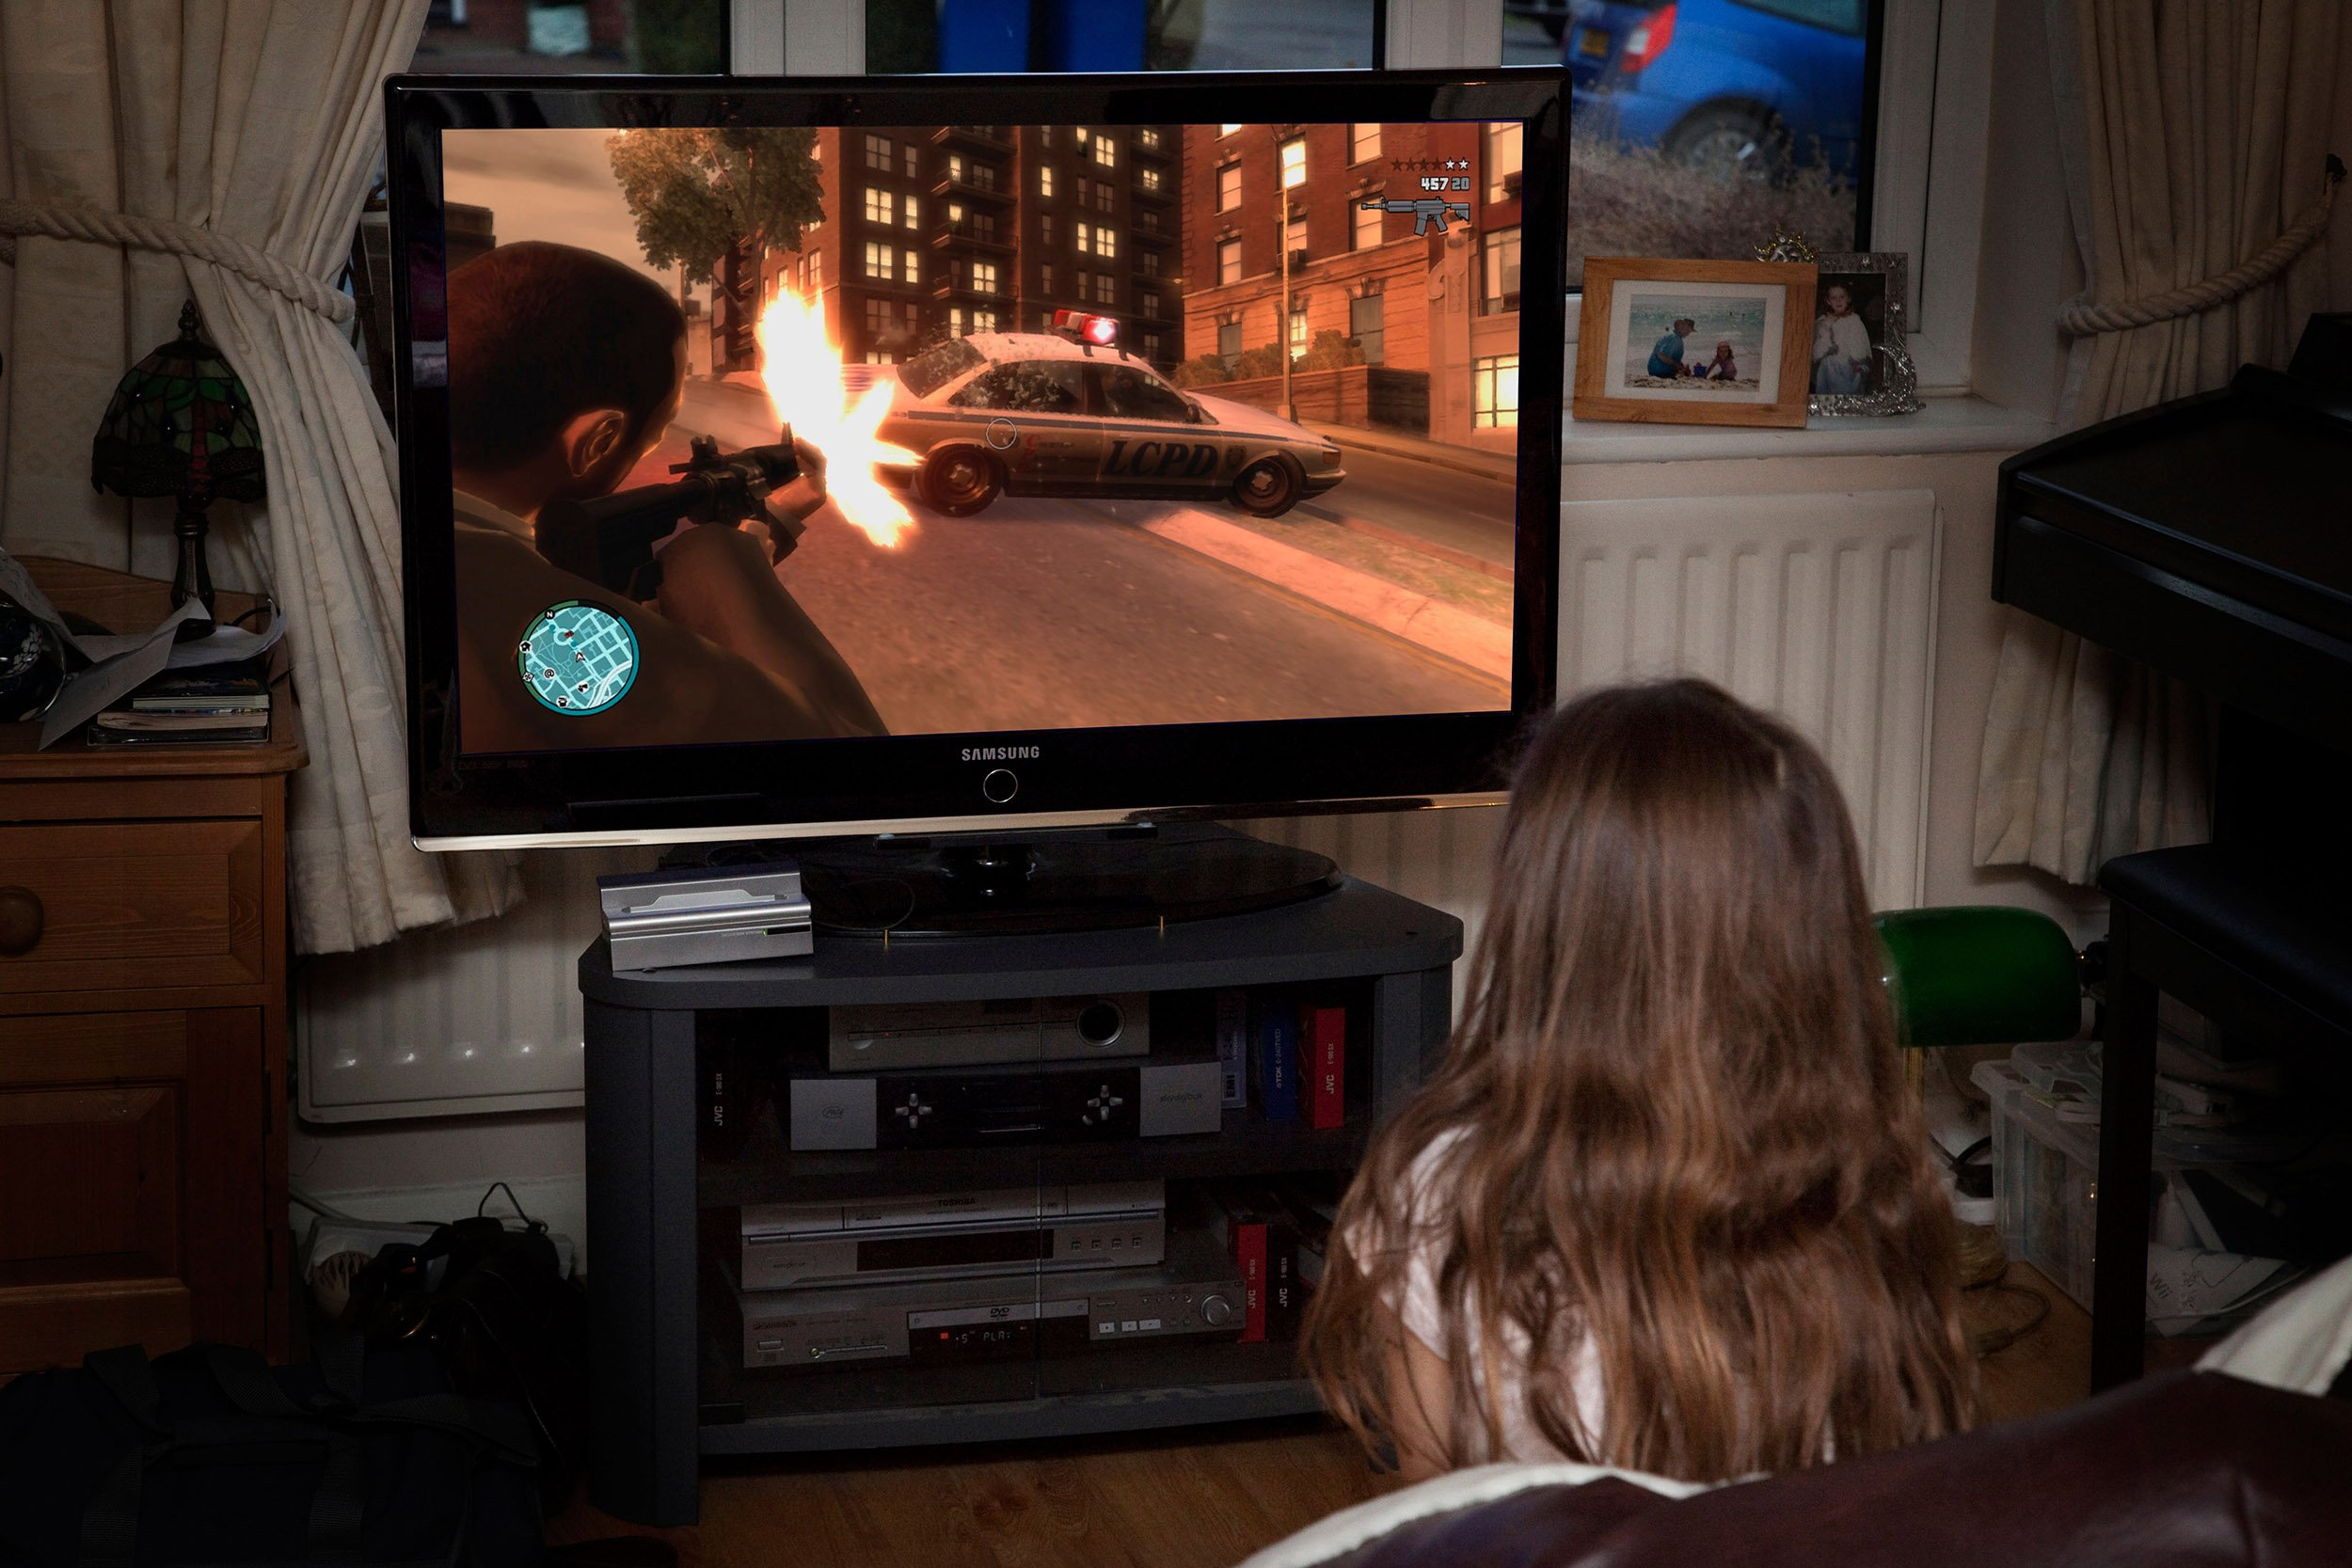 violence in video games research paper Evaluating the research on violent video games jonathan l freedman department of psychology attention has turned toward the violence in video games.